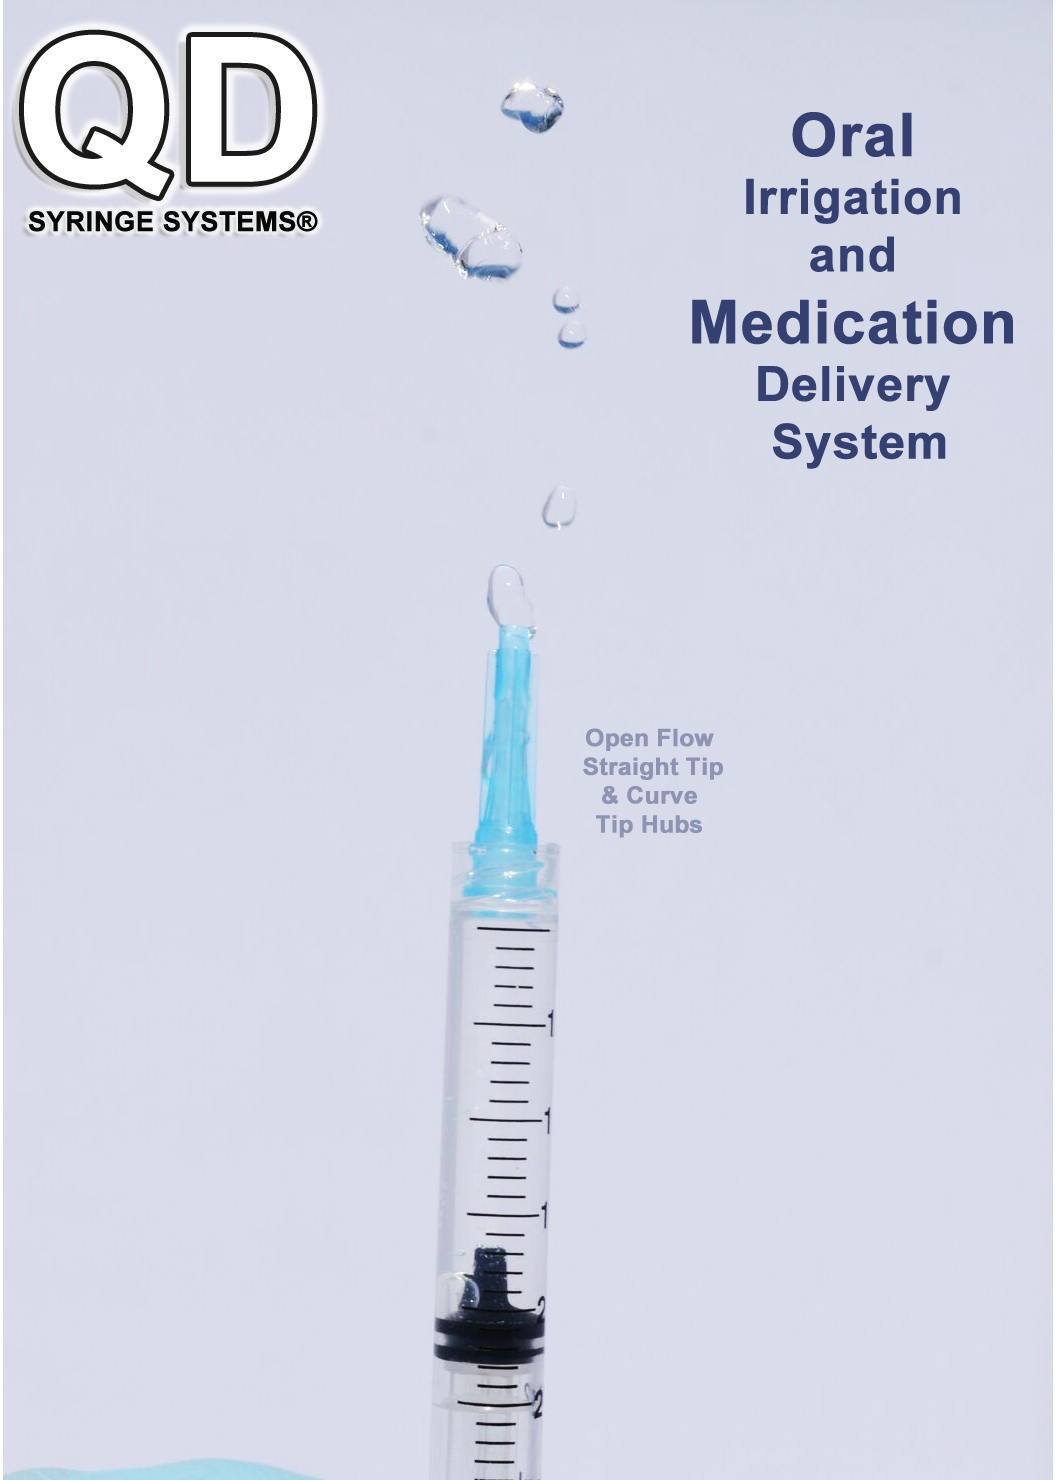 qd-syringe-oral-irrigation-and-medication-delivery-syringe